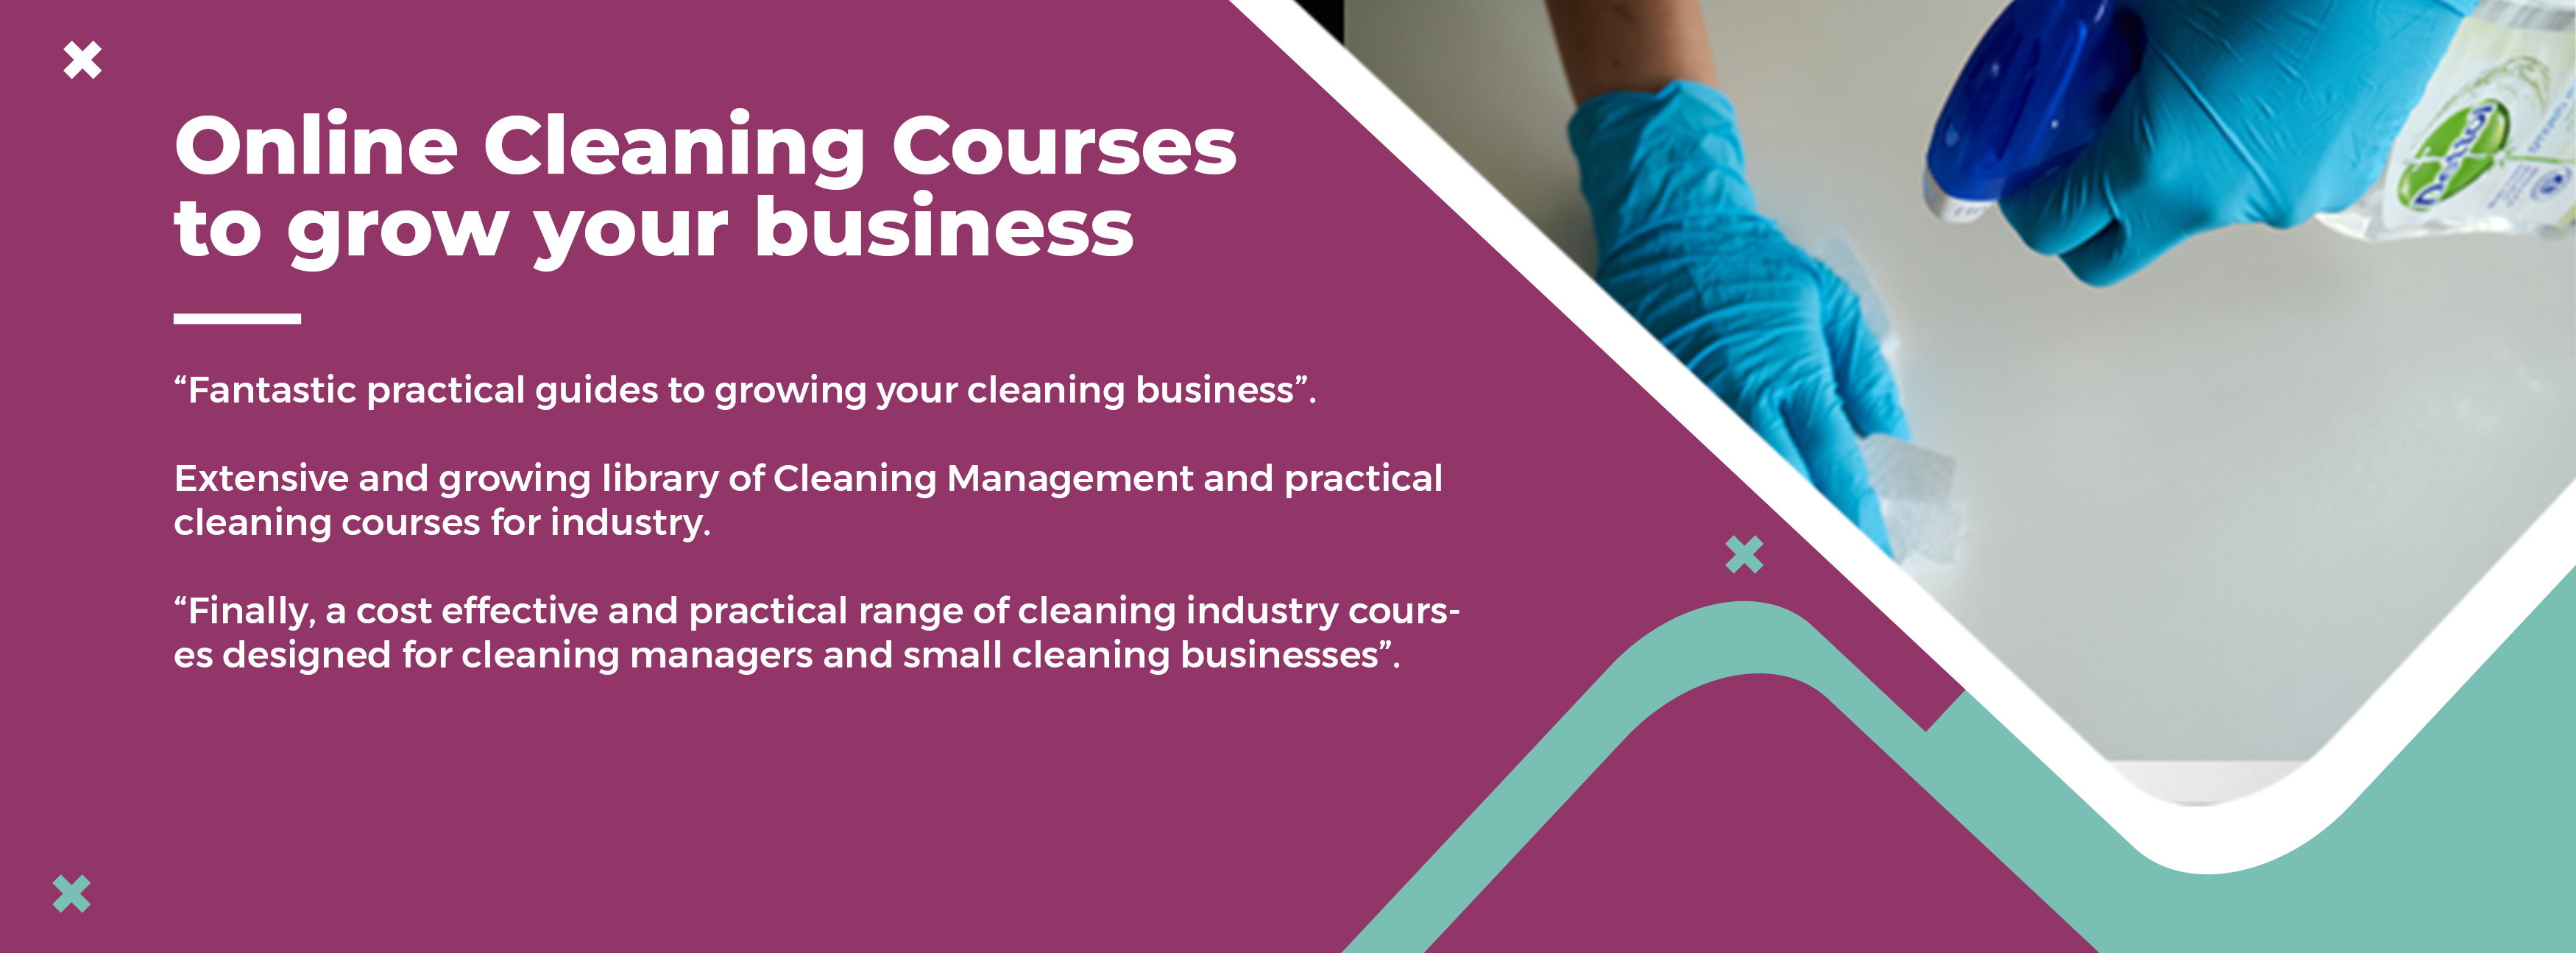 Cleaning Management Courses – Affordable Courses for Industry